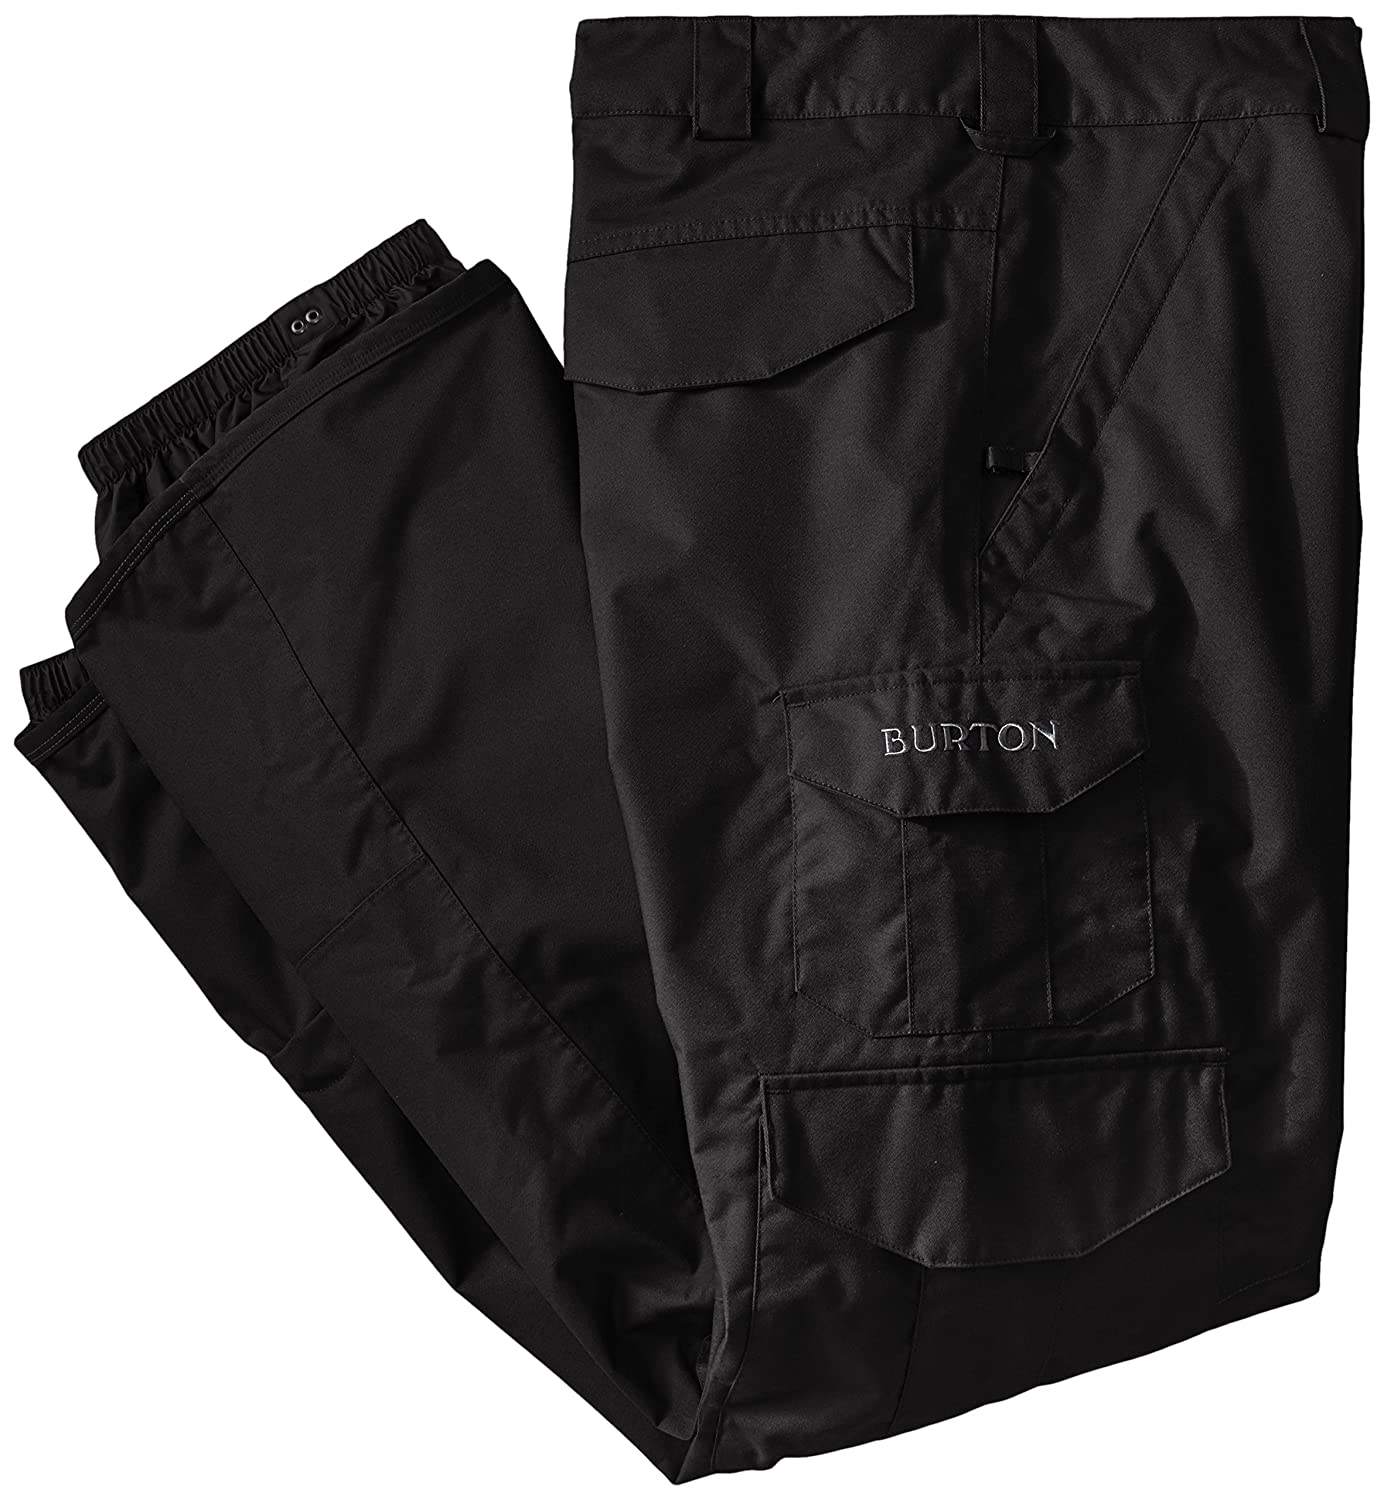 Burton Men's Cargo Tall Pant, True Black 2, Largex35 101881